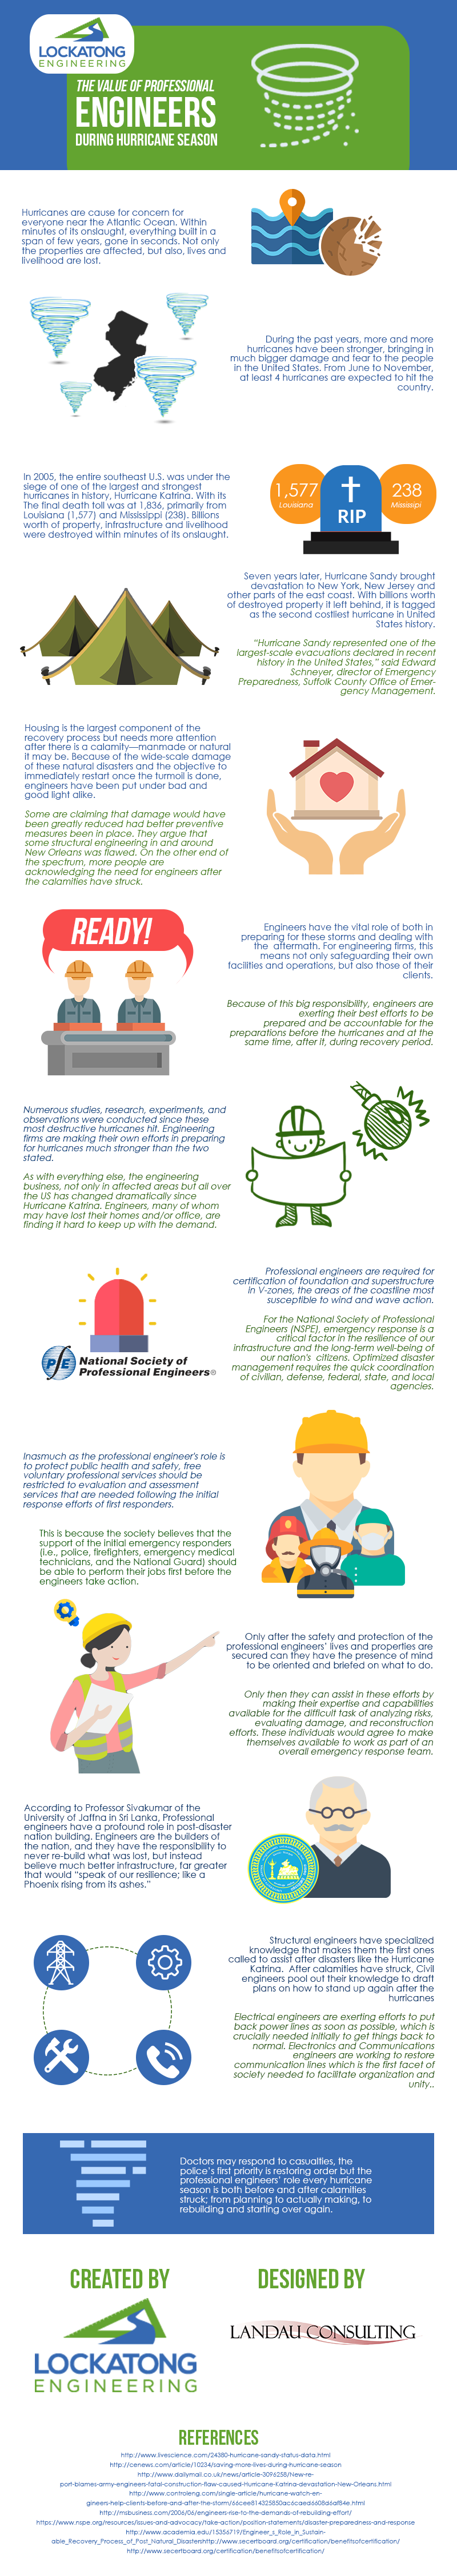 Why Engineers are a Critical Resource in Hurricanes - Infographic